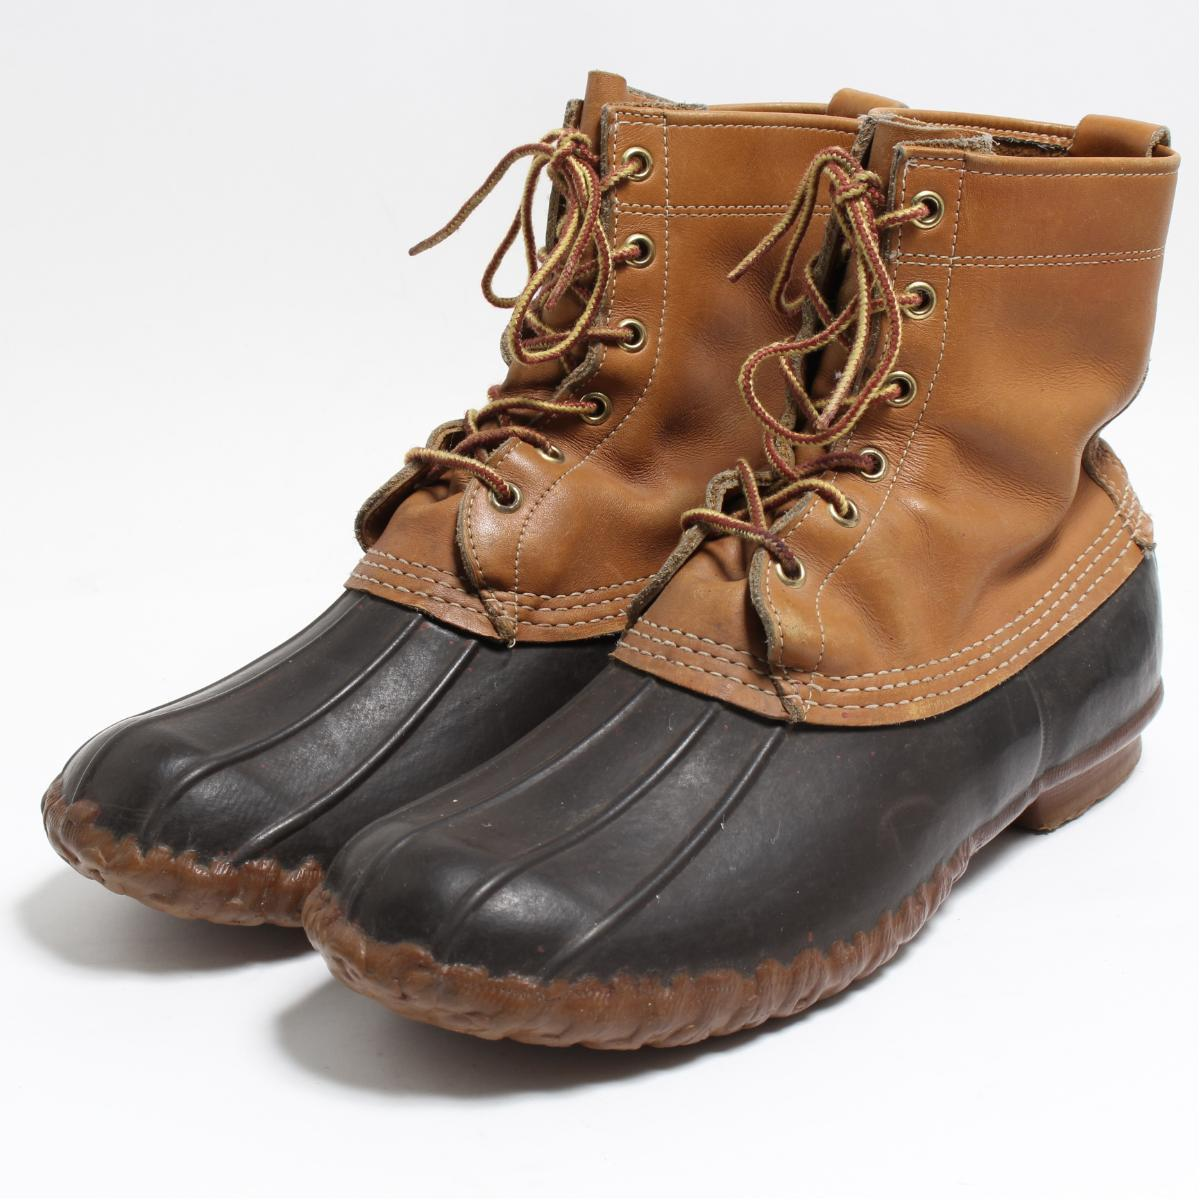 1847a101001 10M men 28.0cm vintage /boo8049 in the 70s made in ~ L. L. Bean L.L.Bean 8  inches 6 hall bean boots hunting boots USA